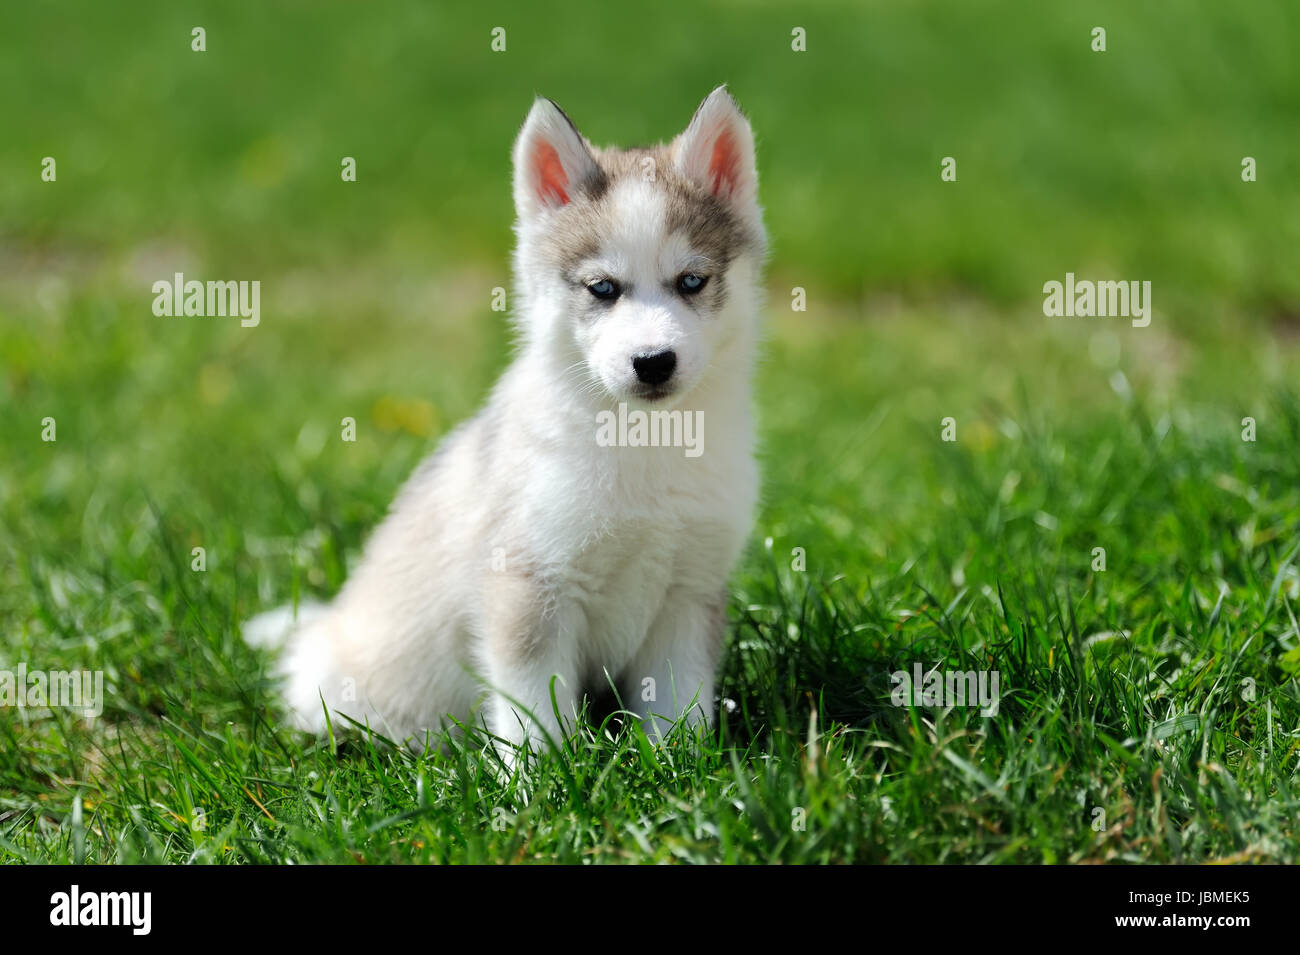 Cute Little Siberian Husky Puppy In Grass Stock Photo 144894713 Alamy